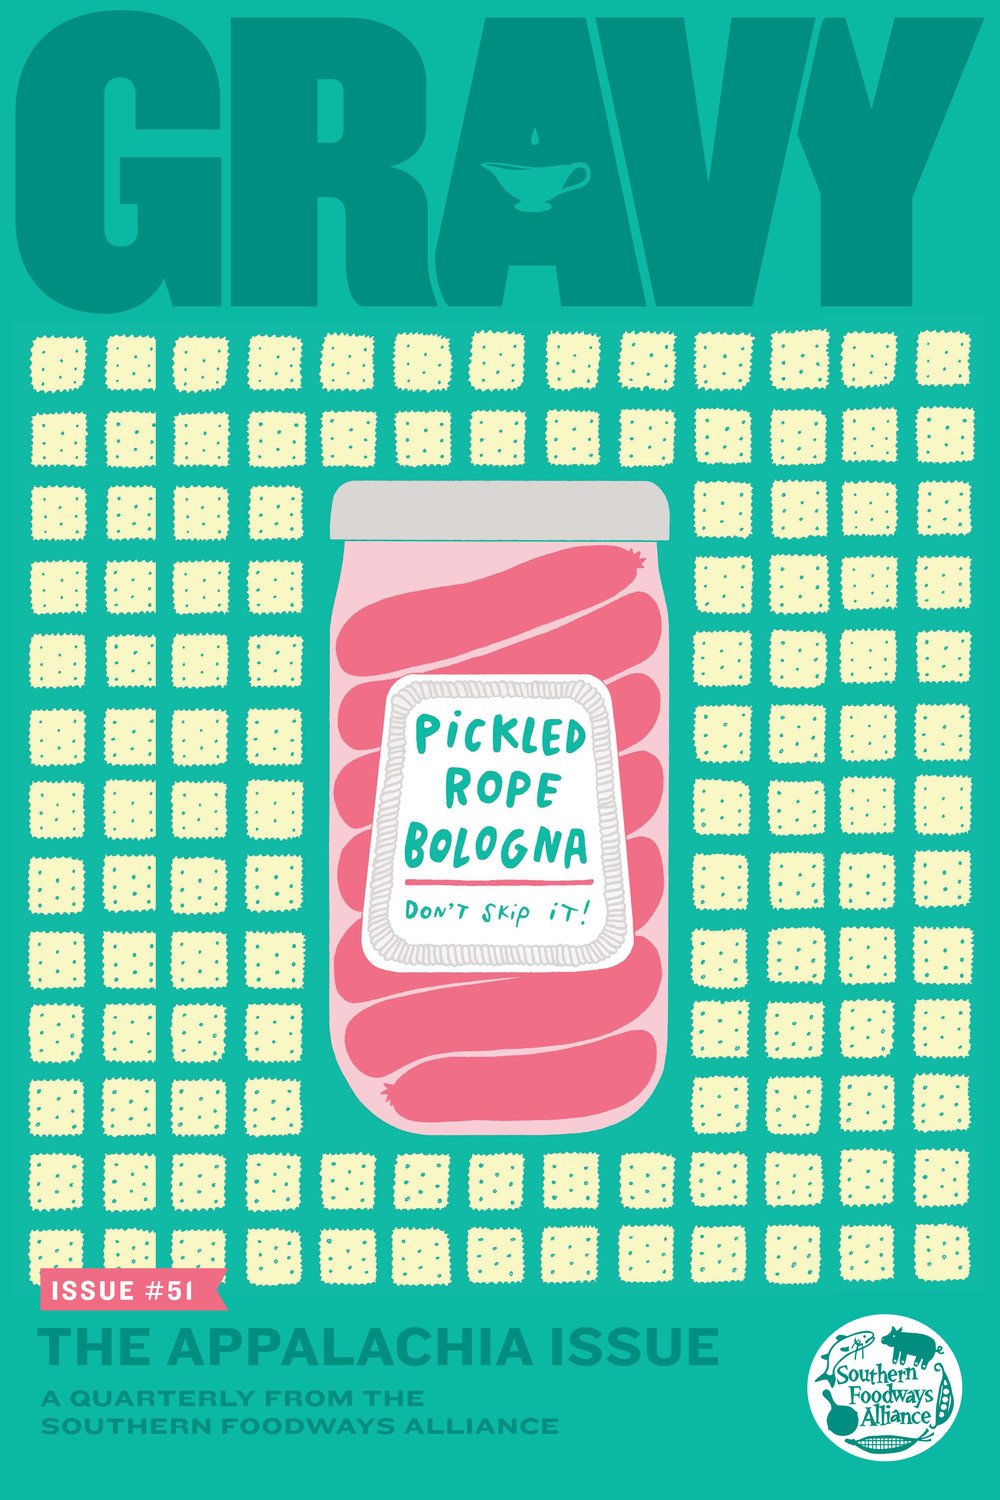 Pickled Rope Bologna